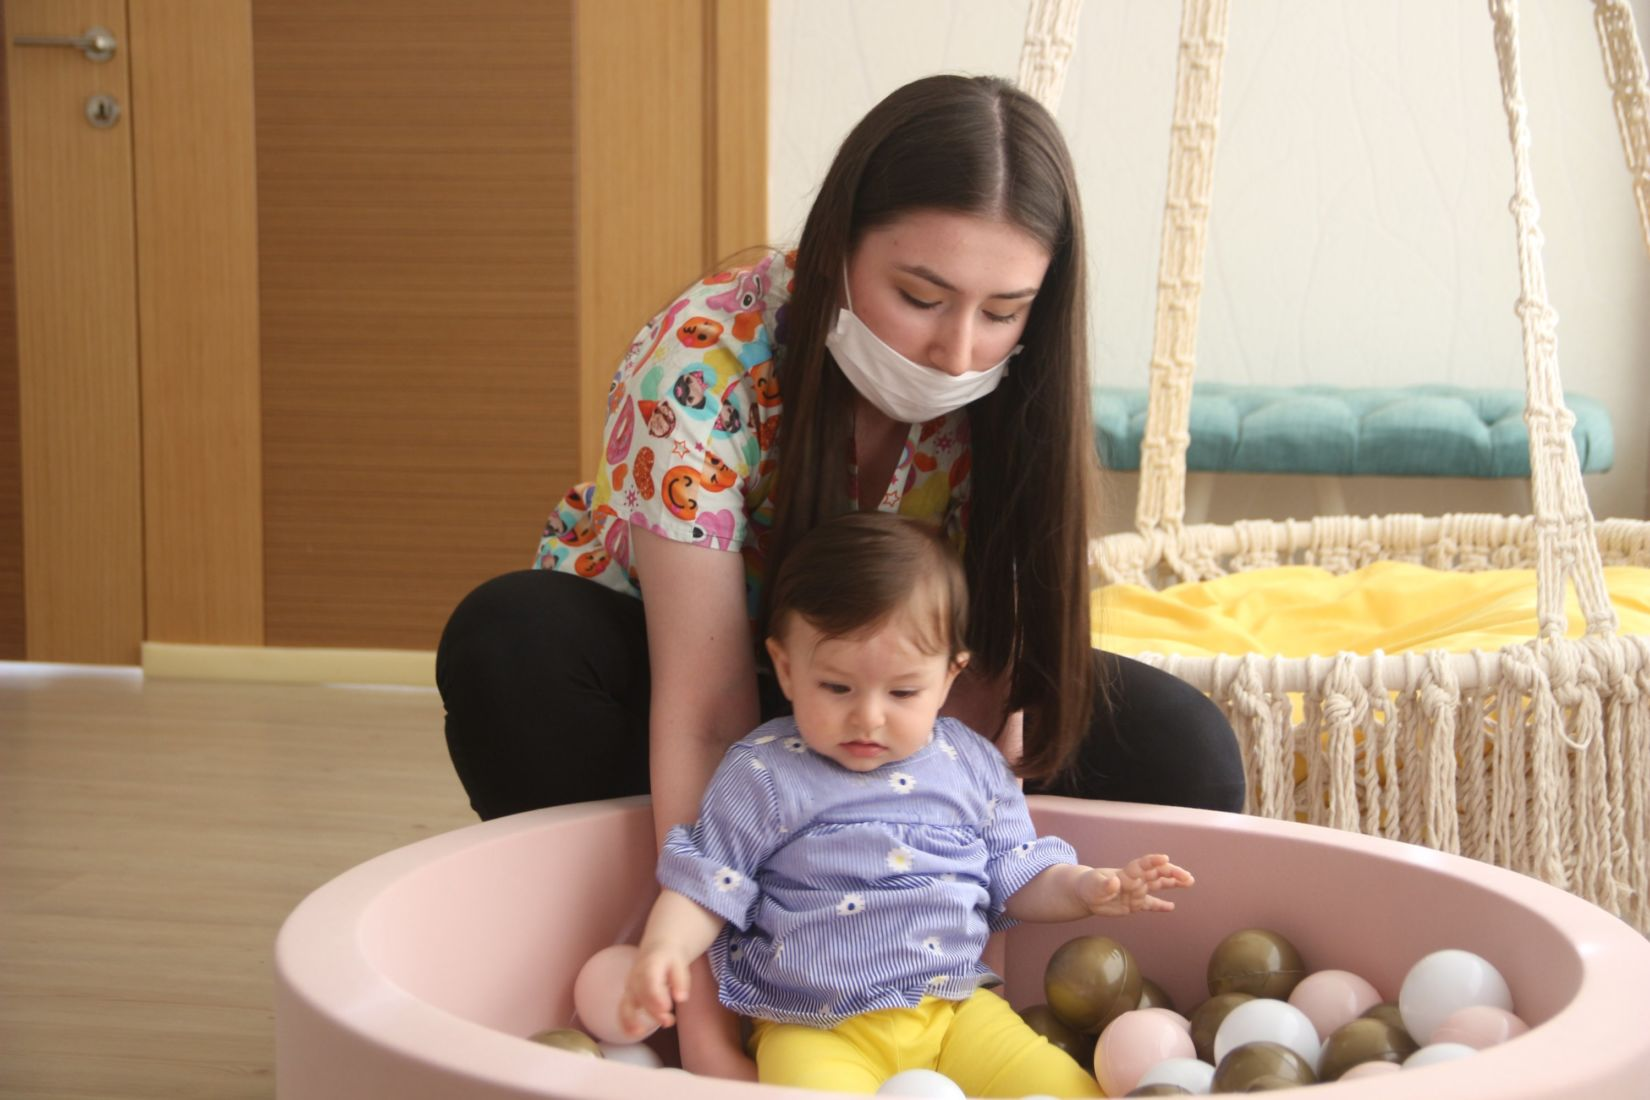 WHO says to keep breastfeeding, even with Covid-19   The Thaiger